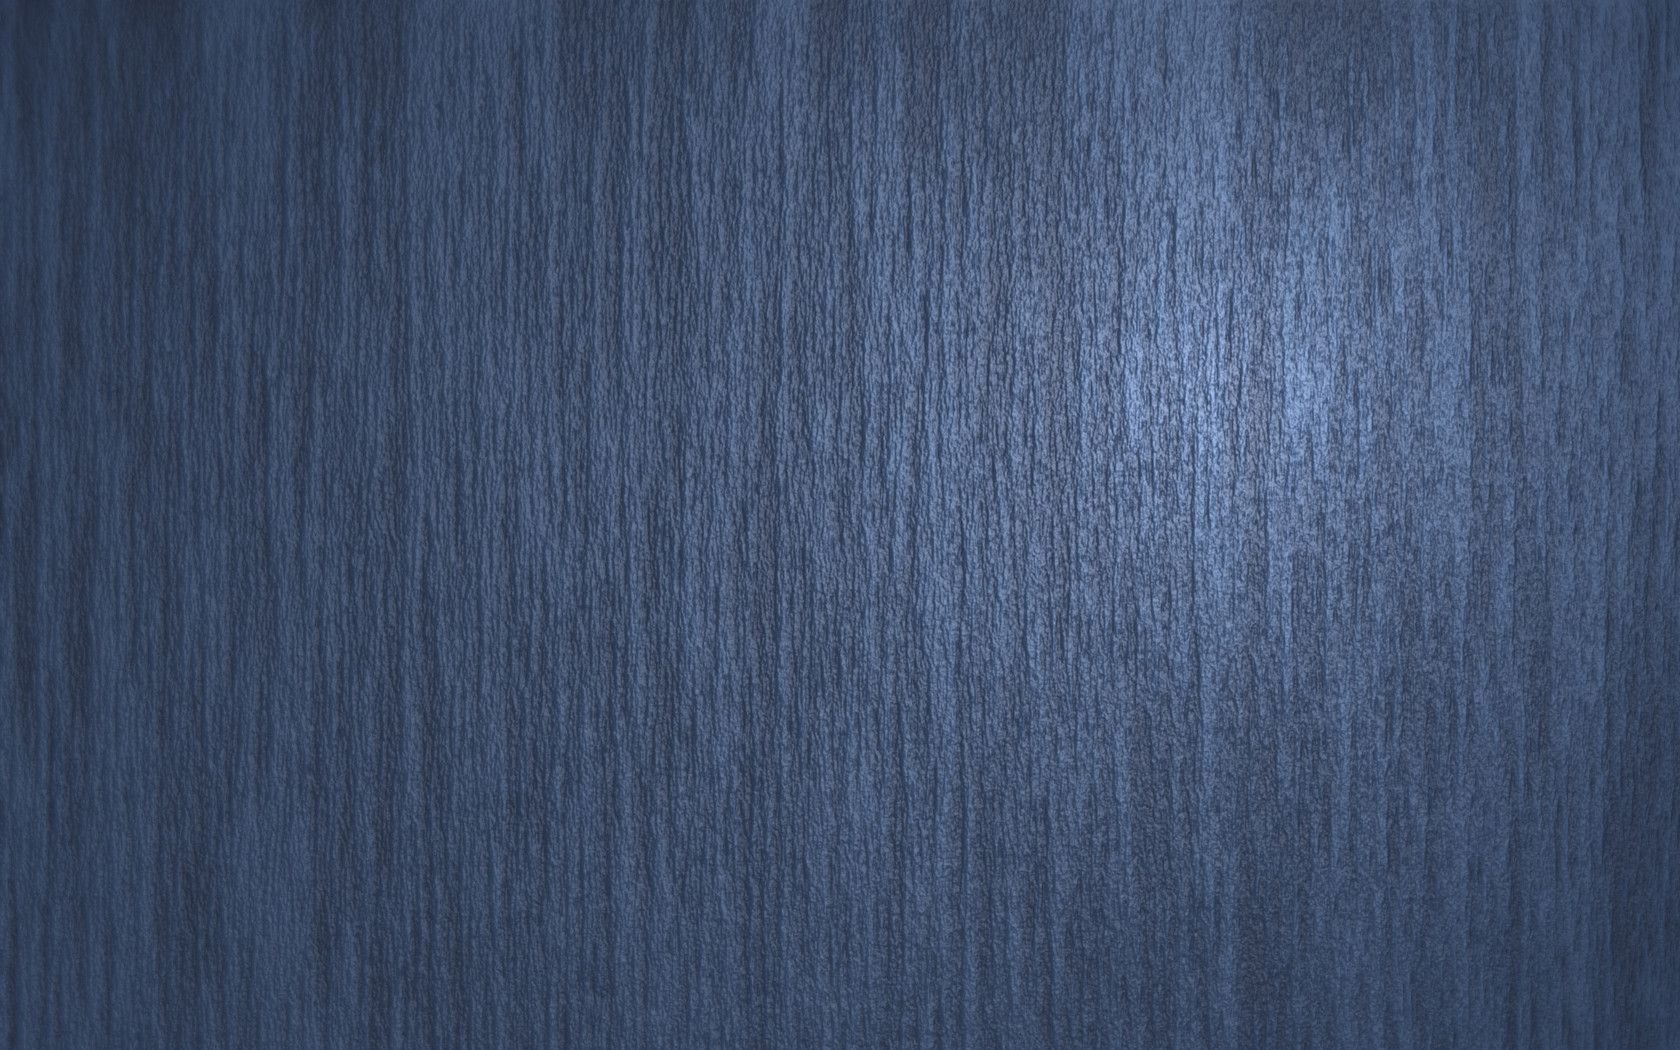 Free download Texture Wallpaper Hd